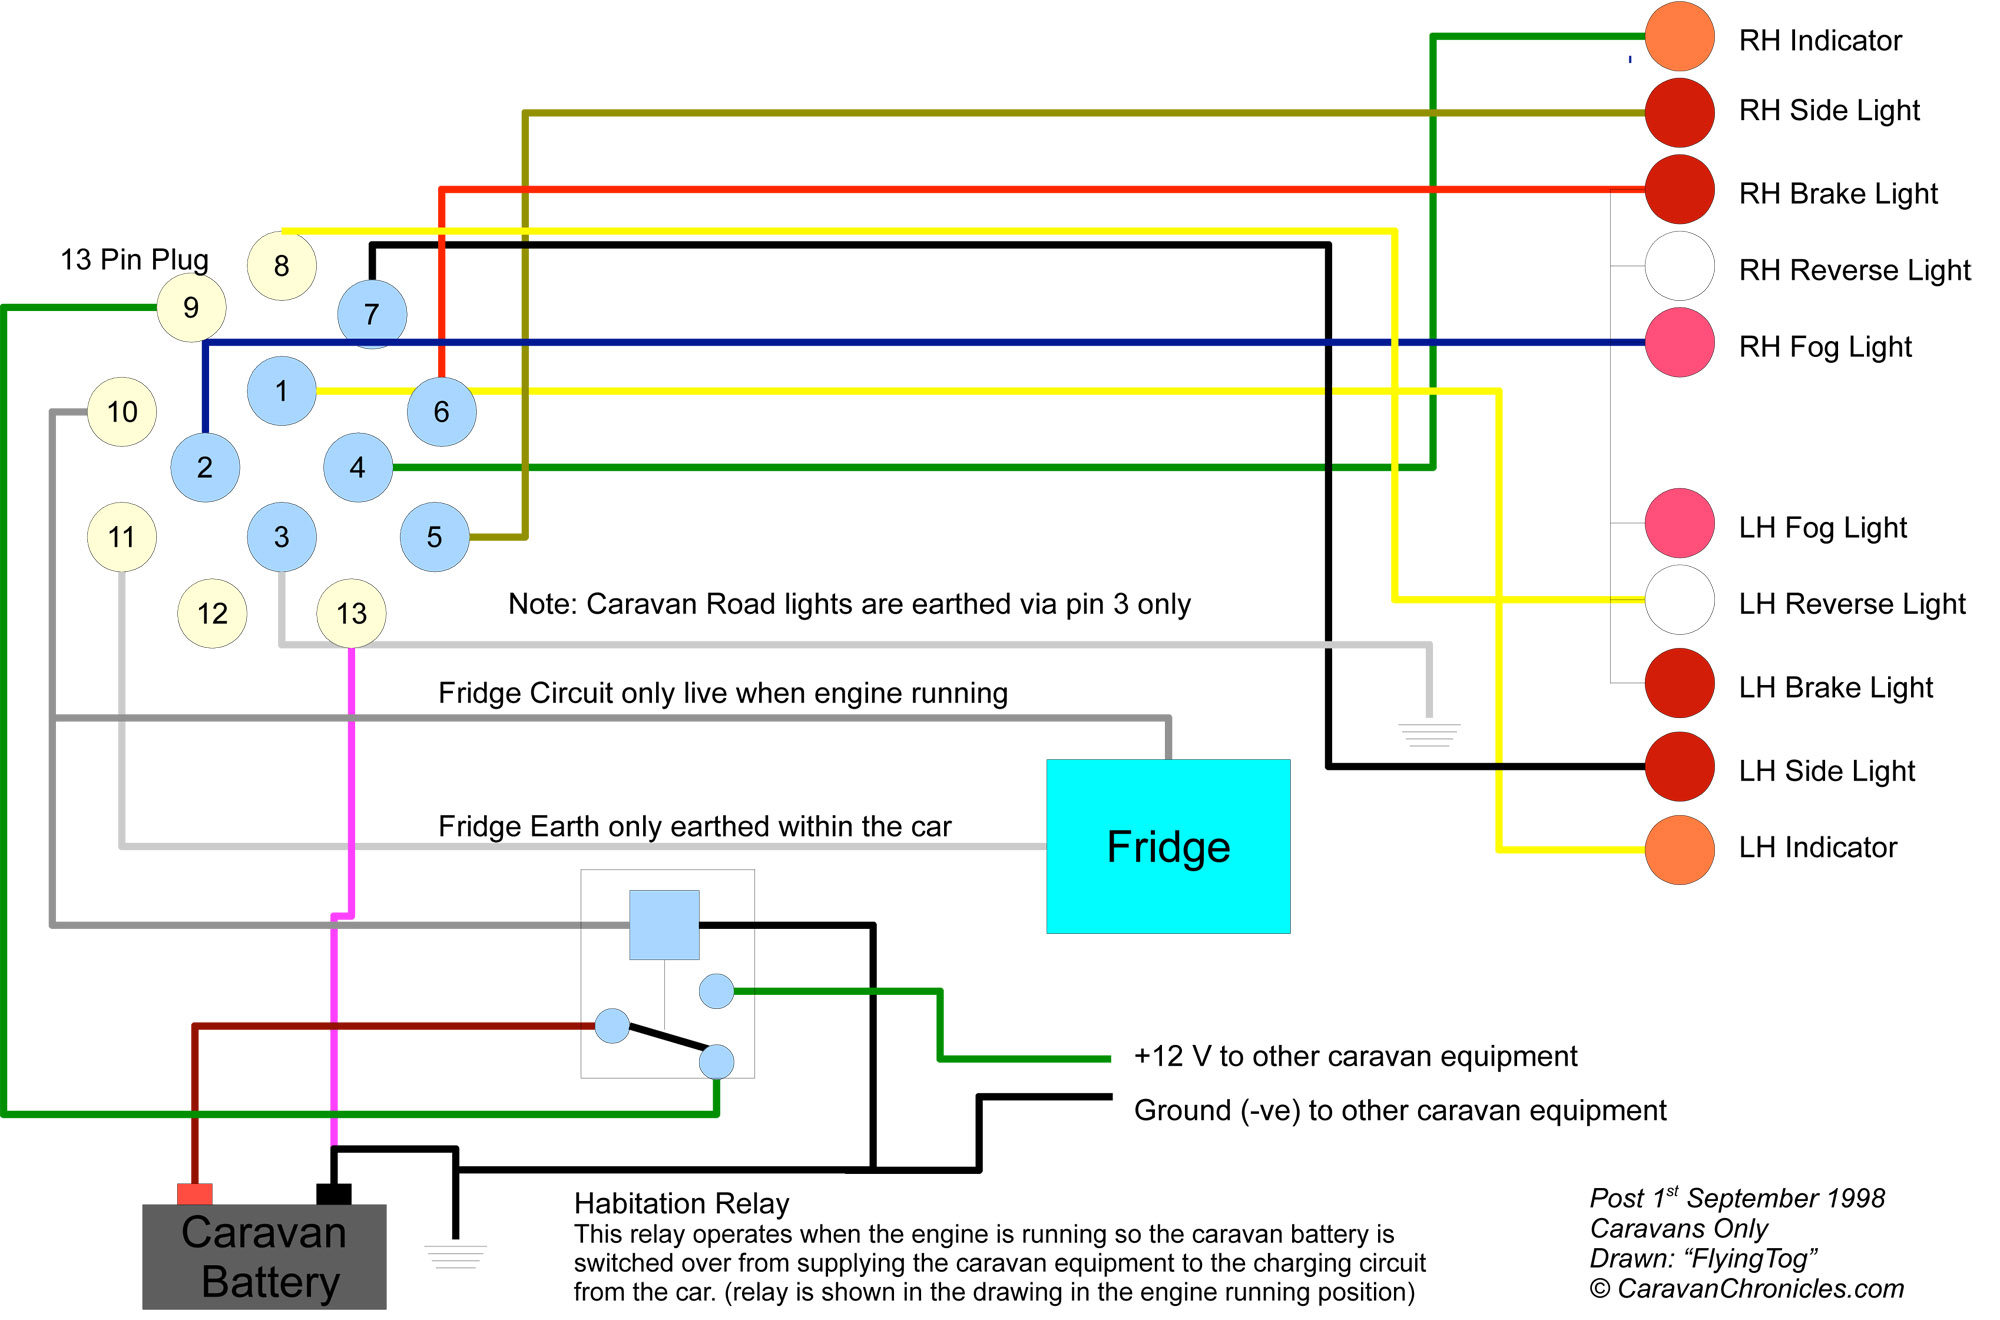 Understanding Caravan and Tow Car Electrics – Caravan Plug Wiring Diagram